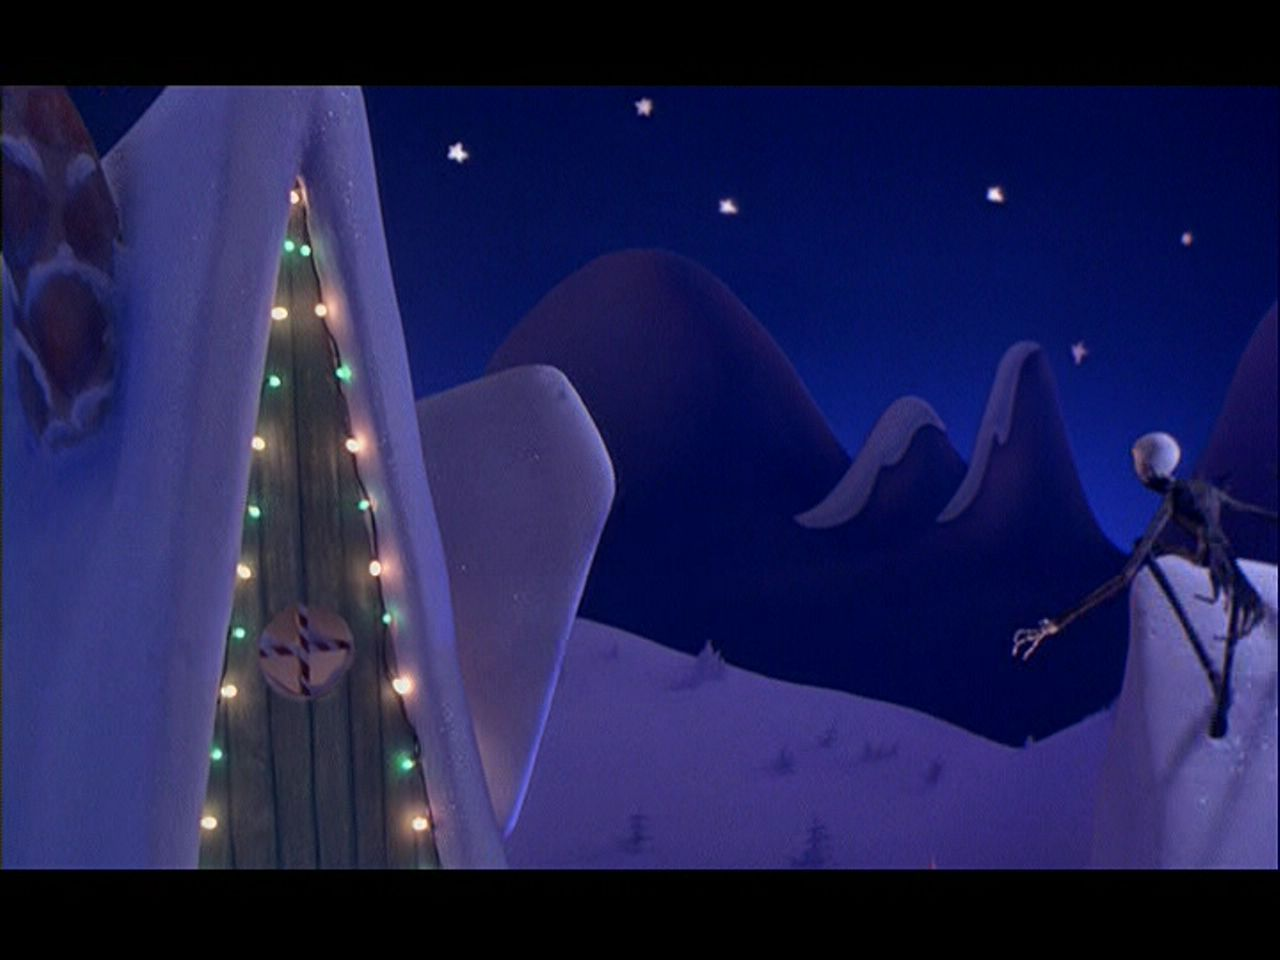 Nightmare Before Christmas Hd Wallpaper.Nightmare Before Christmas Images The Nightmare Before